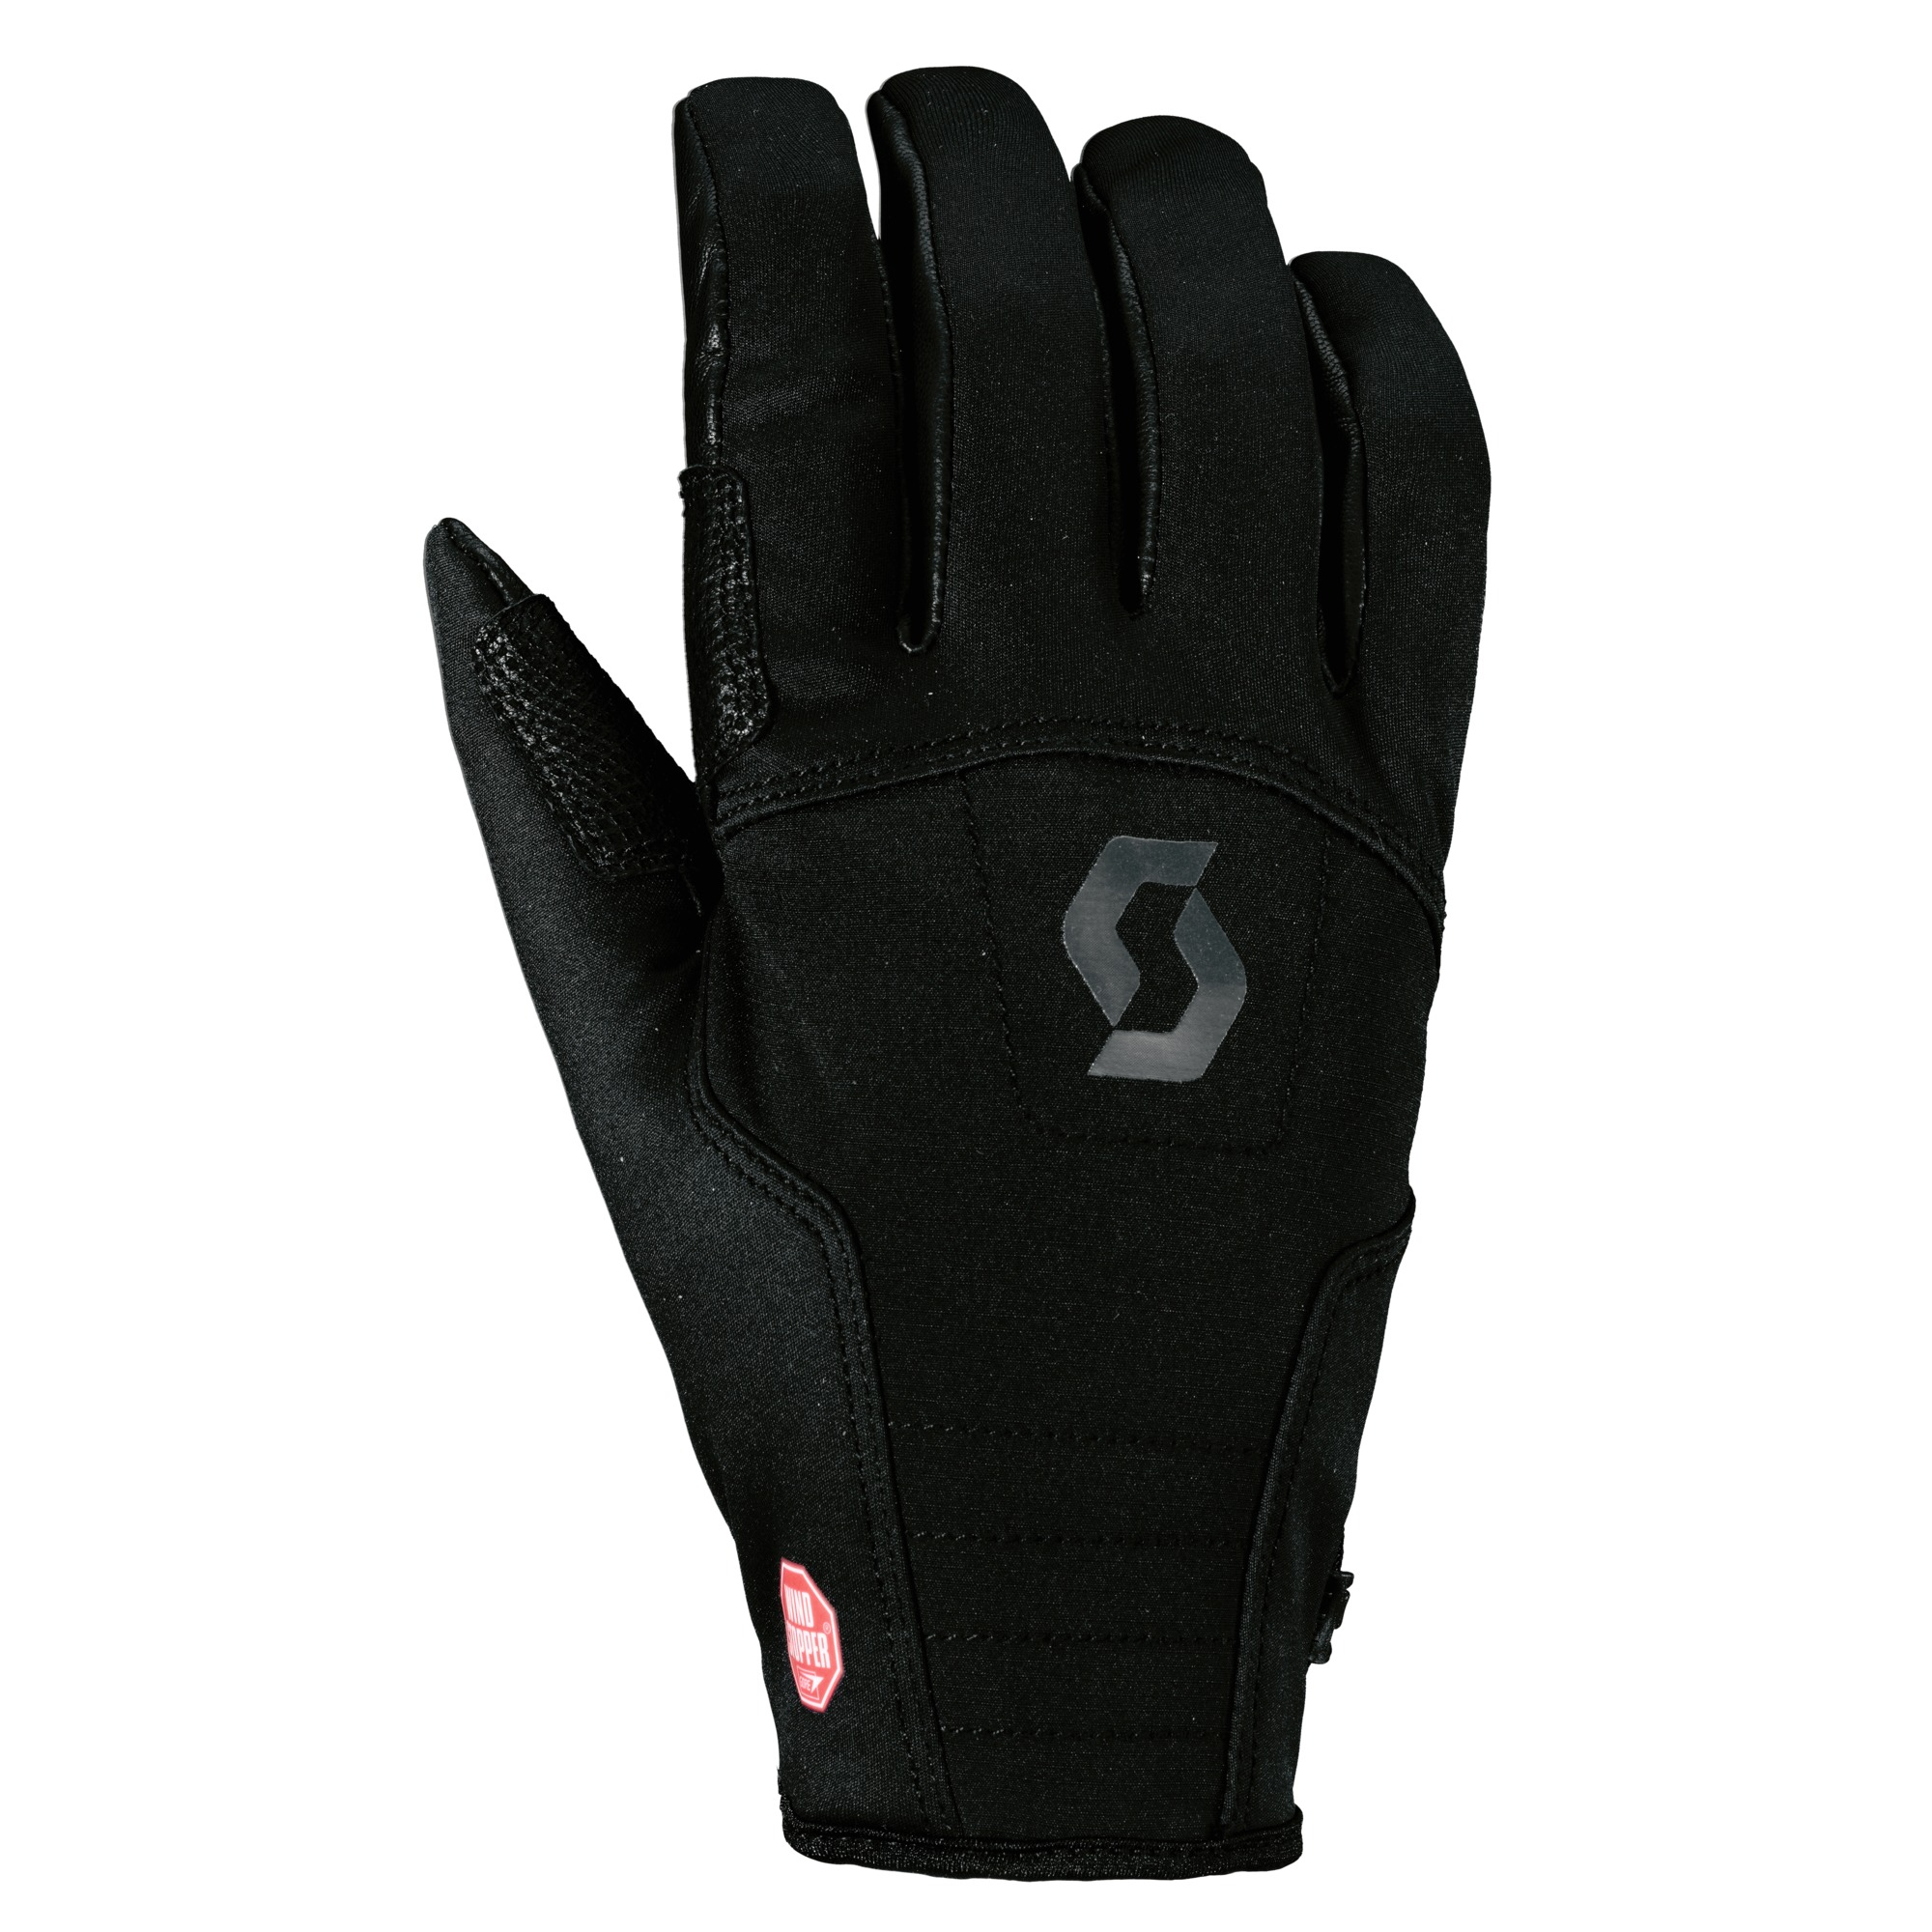 GUANTI DA NEVE SCOTT EXPLORAIR SOFTSHELL 244444 BLACK.jpg